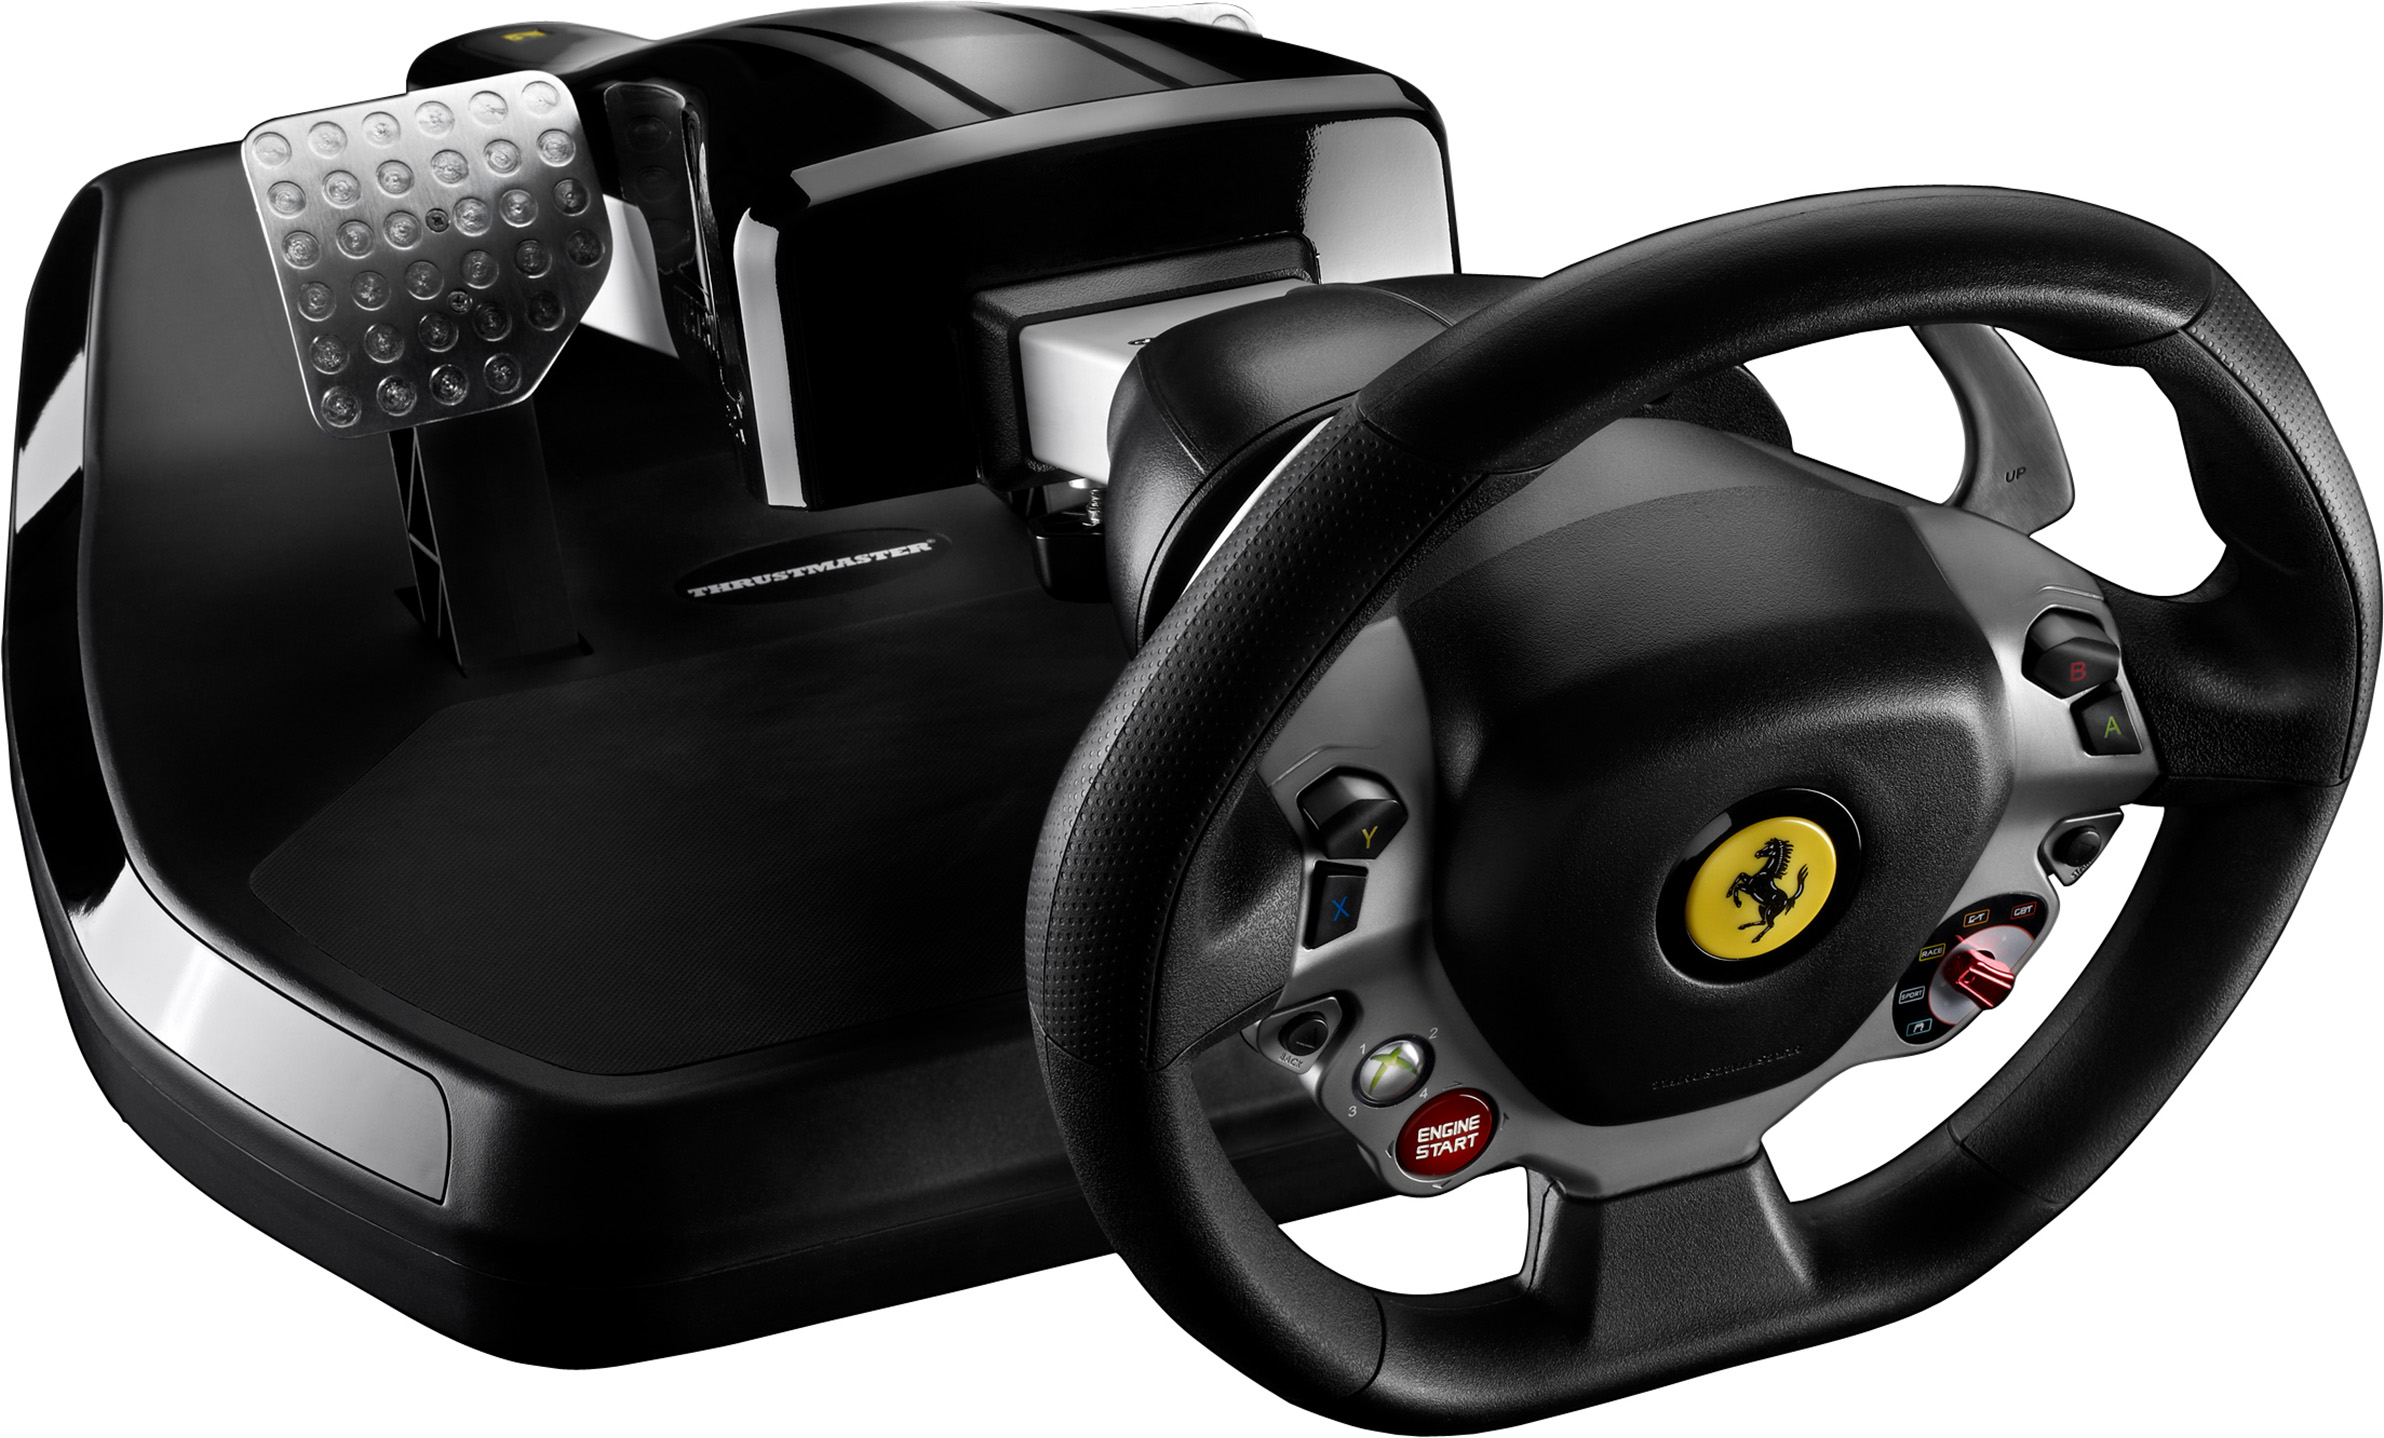 Thrustmaster Ferrari Vibration GT Cockpit 458 for Xbox 360